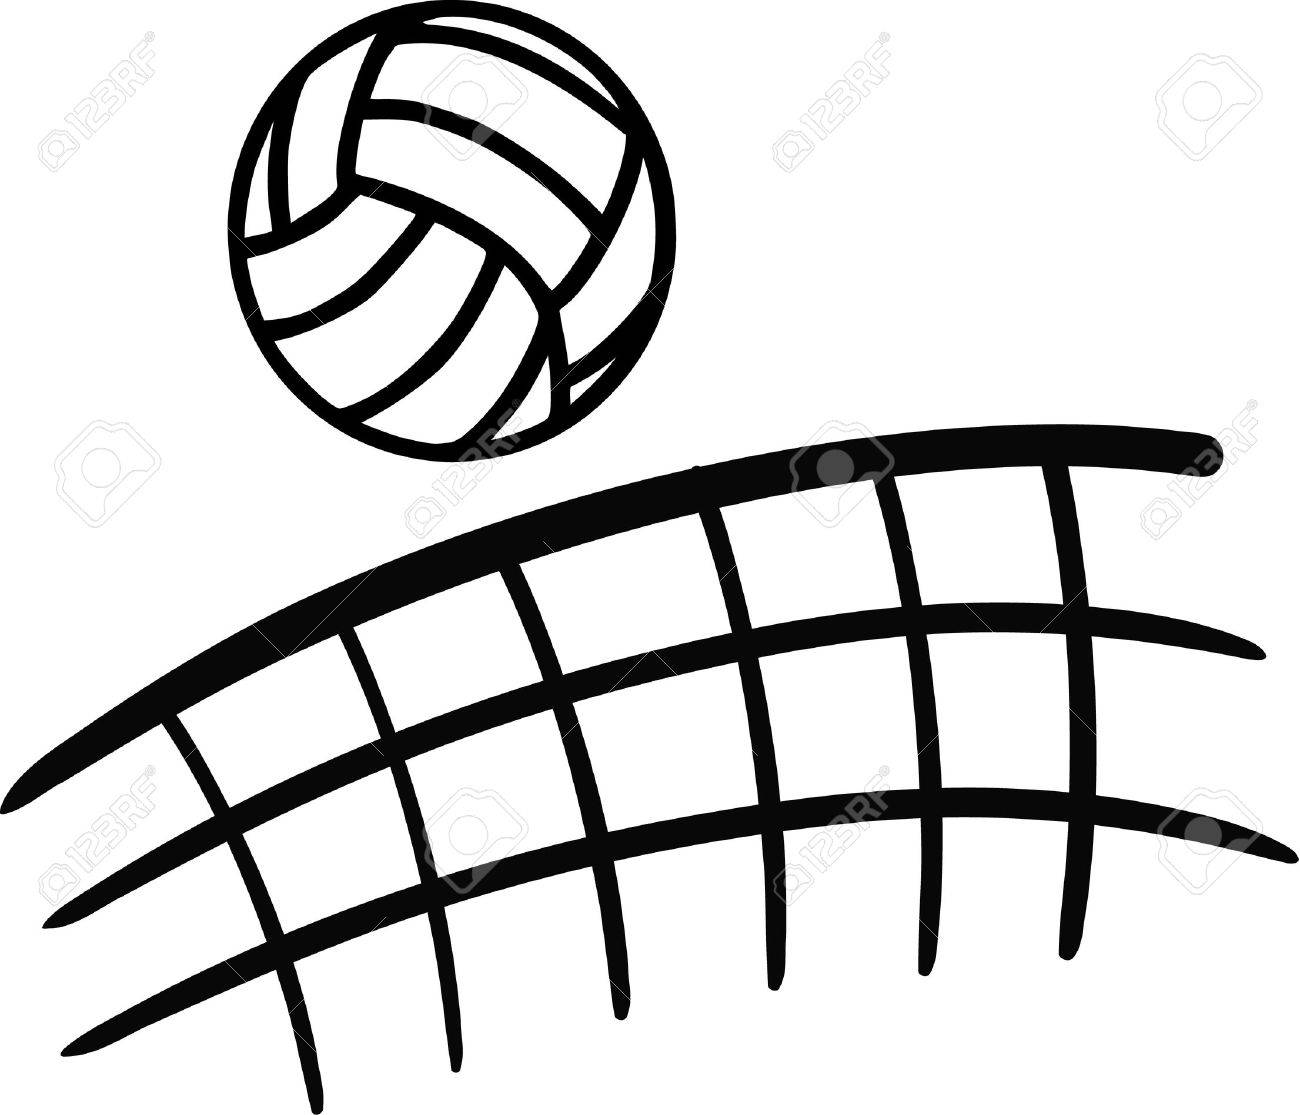 Volleyball Net Clipart & Free Volleyball Net Clipart.png.